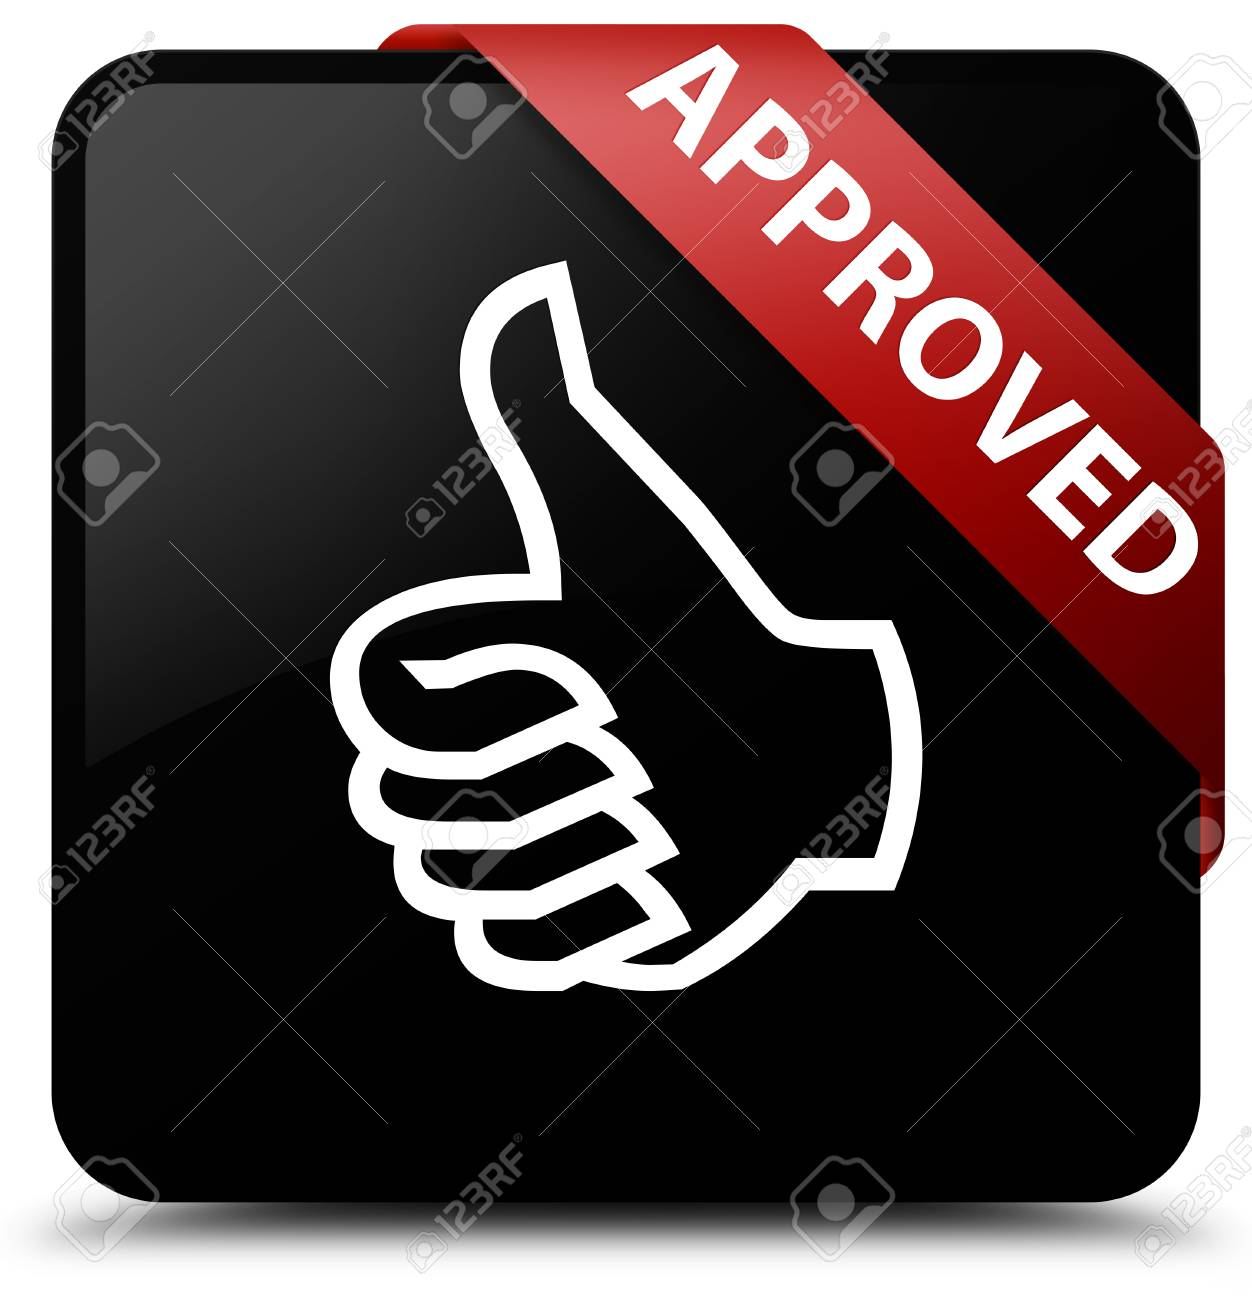 Approved Thumbs Up Icon Black Square Button Stock Photo Picture